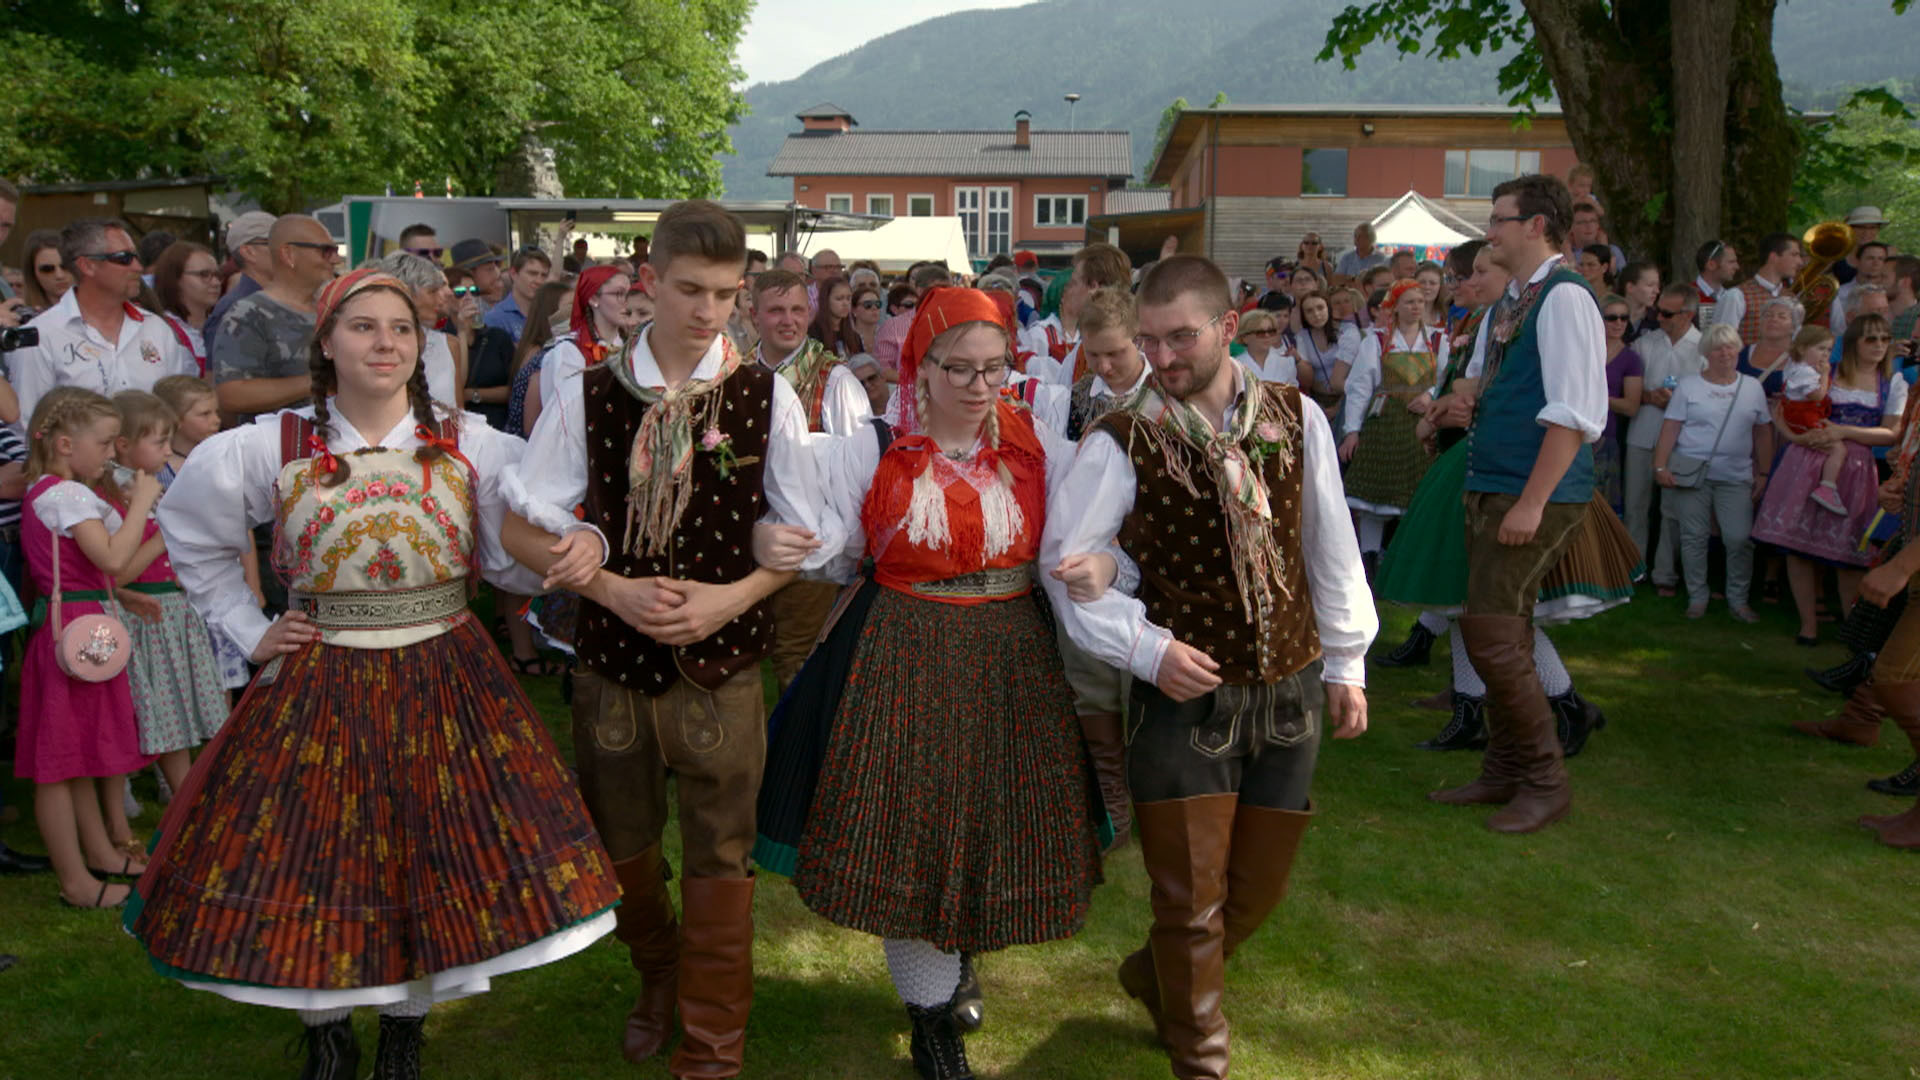 16 Tanz in Tracht